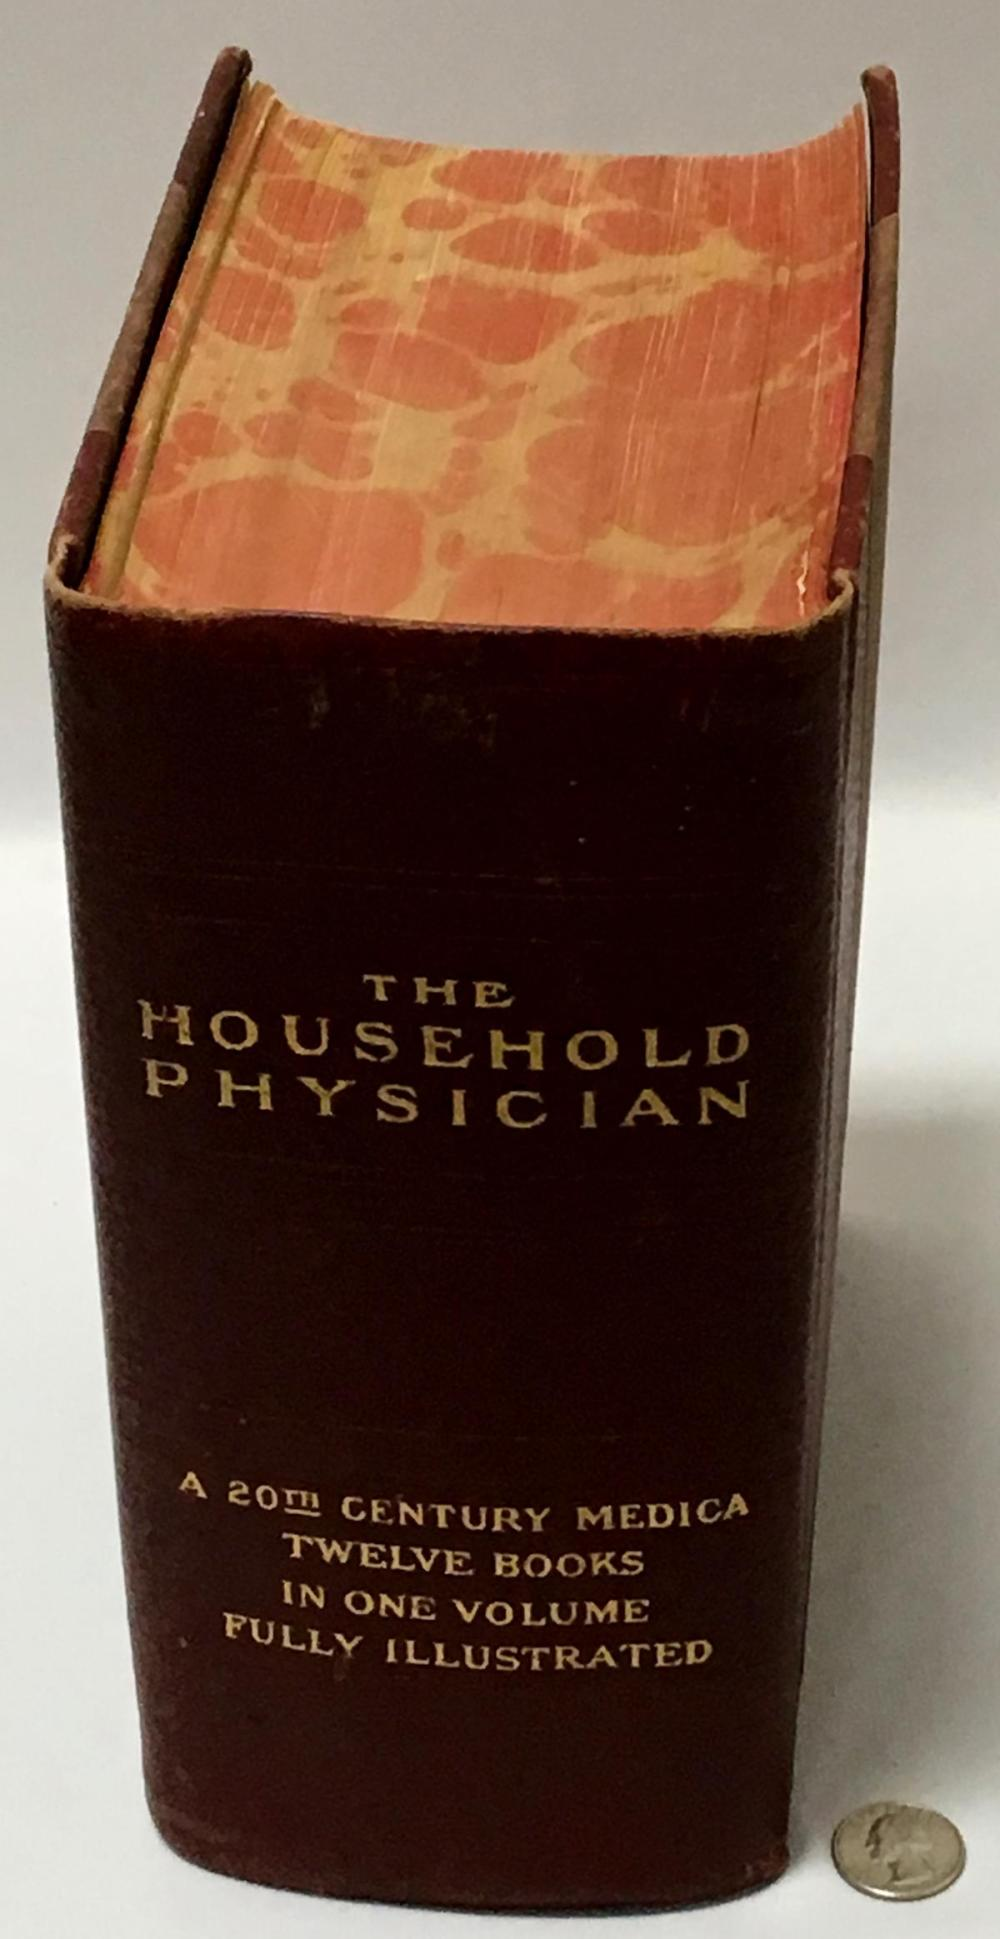 1920 The Household Physician: 20th Century Medical